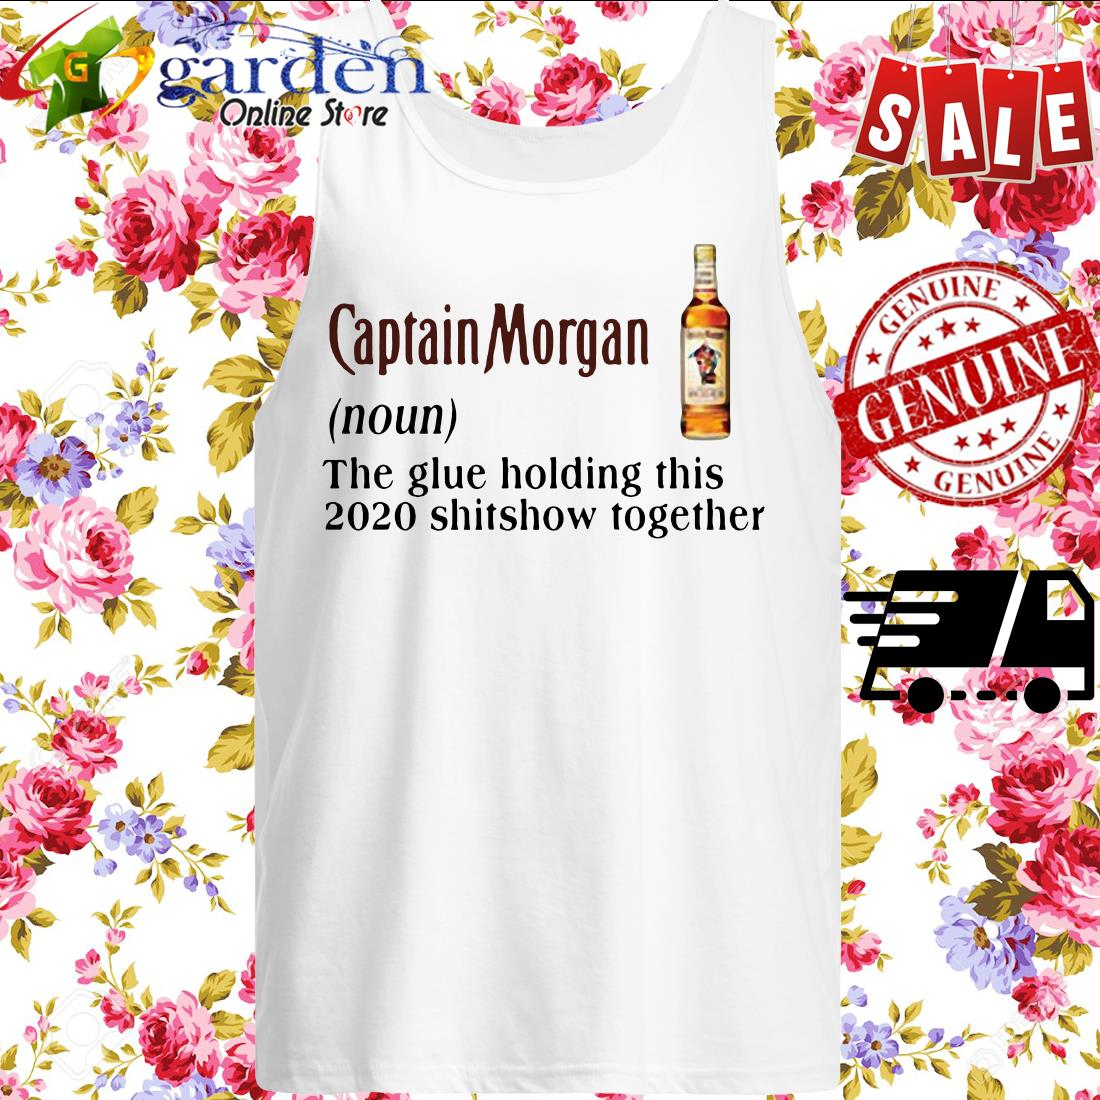 Captain Morgan The Glue Holding This 2020 Shitshow Together tank top